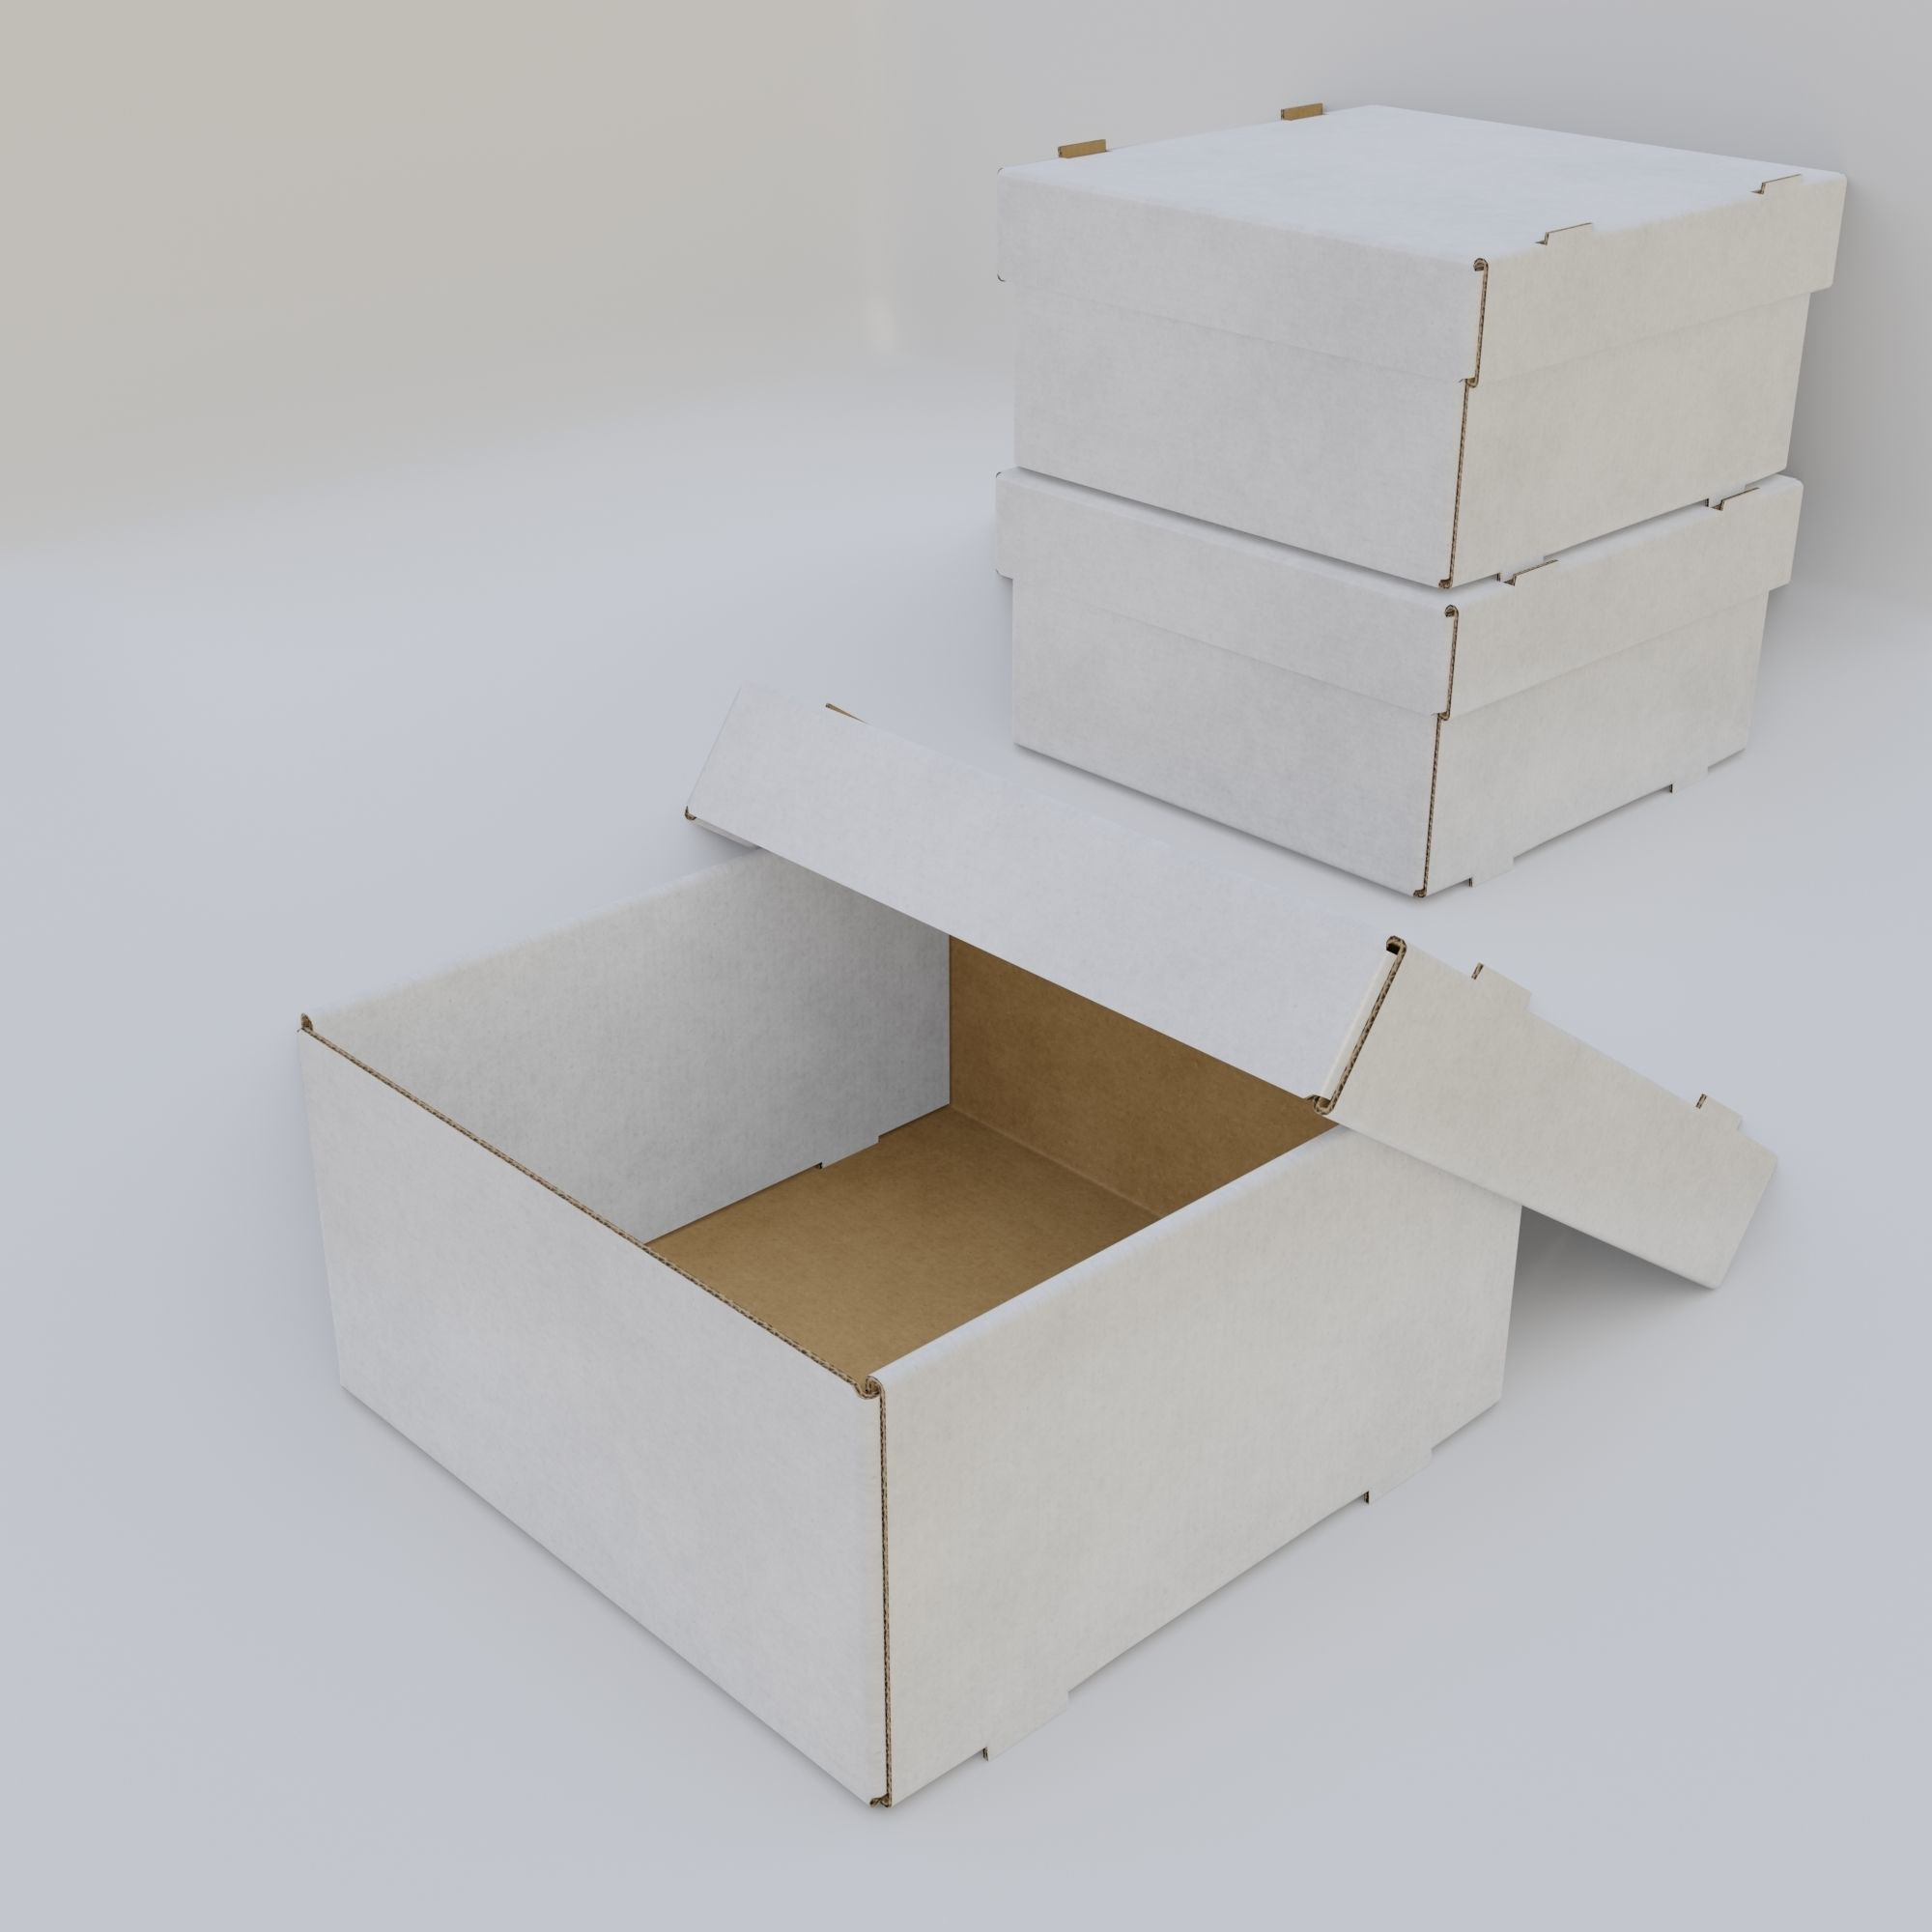 Cardboard Self-Assembly Box With Lid